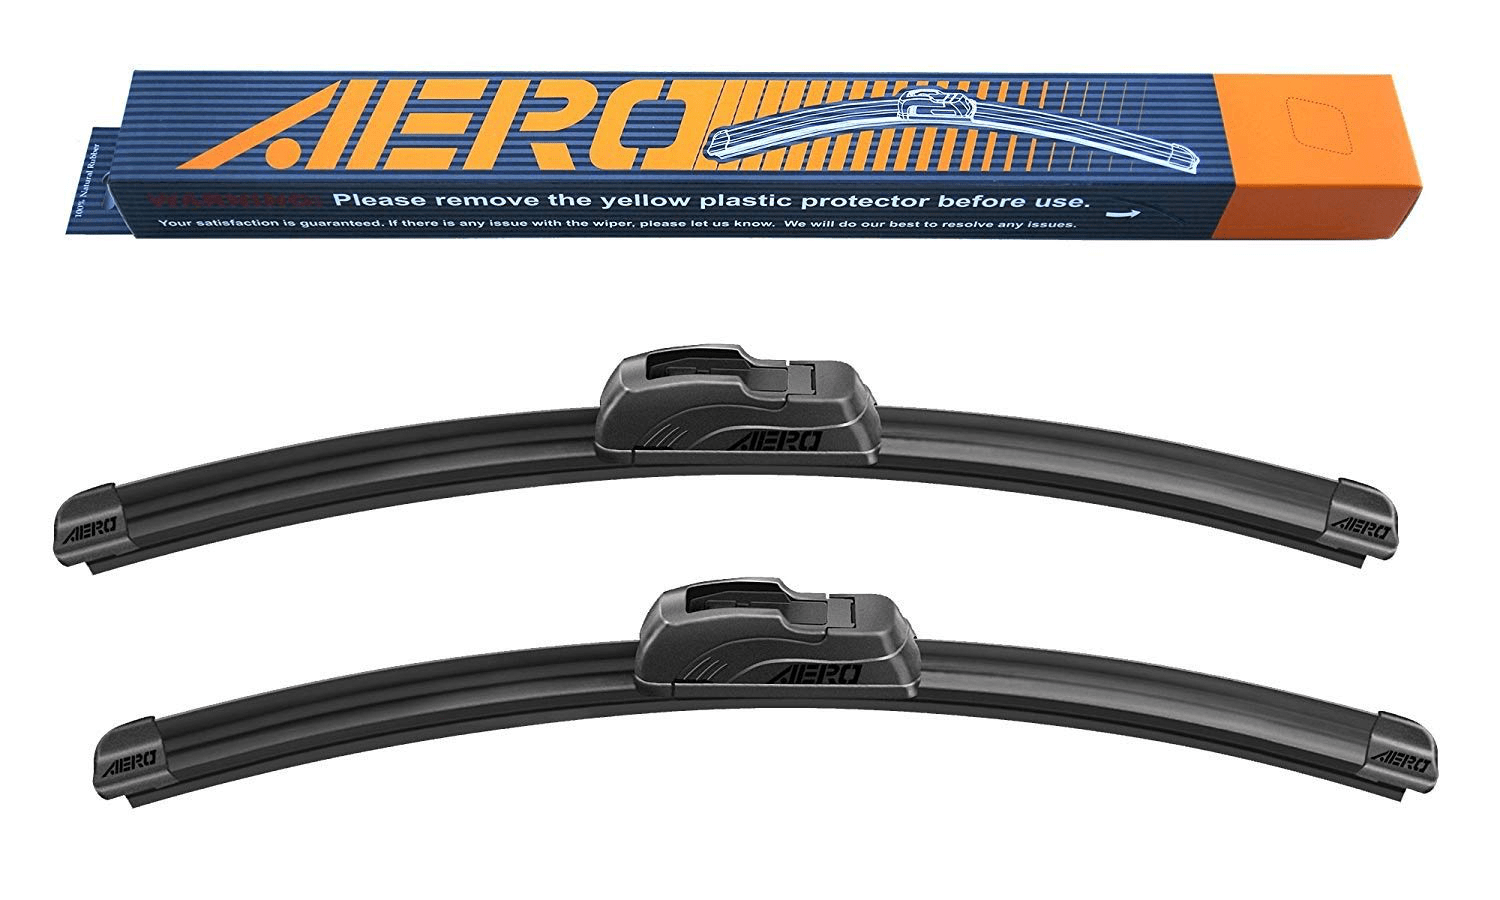 Best Wiper Blades to Buy